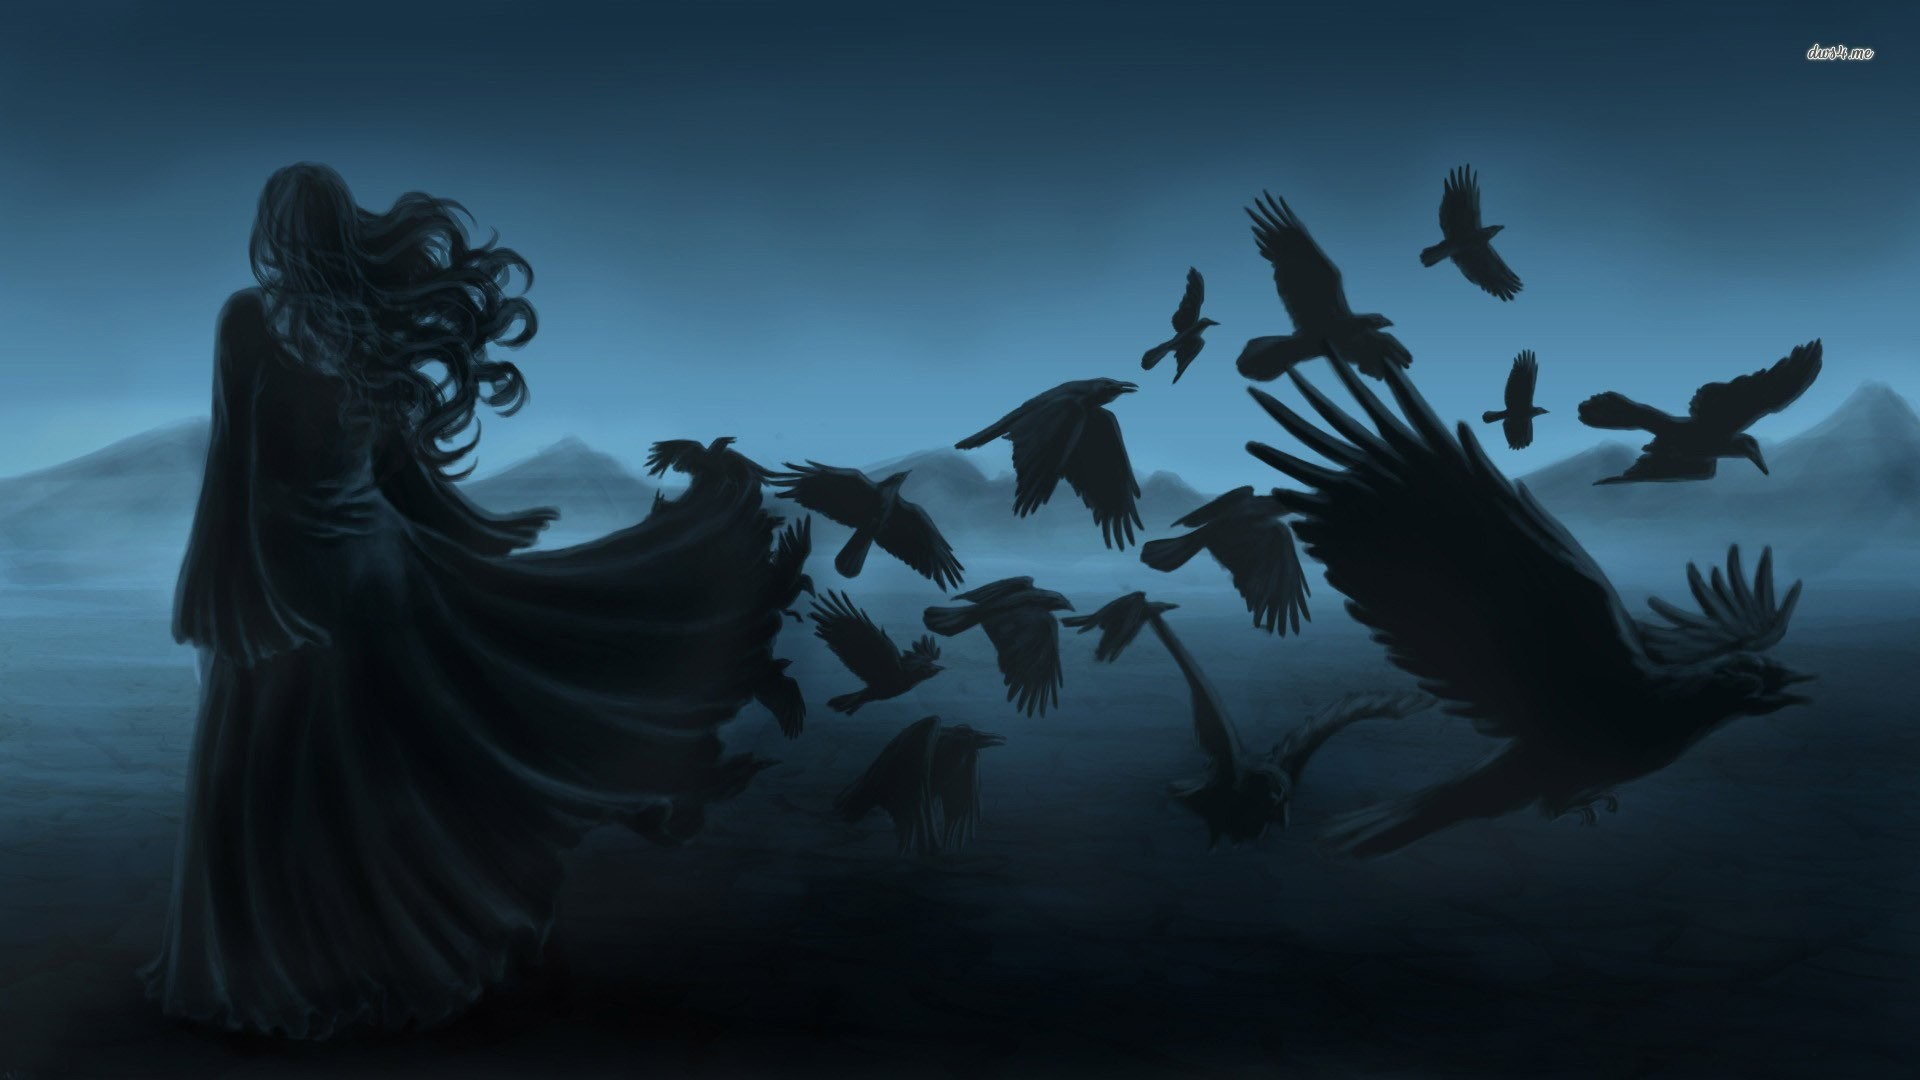 A Collection Of Dark Mysterious Hd Fantasy Wallpapers: Wicca Wallpapers (49+ Images